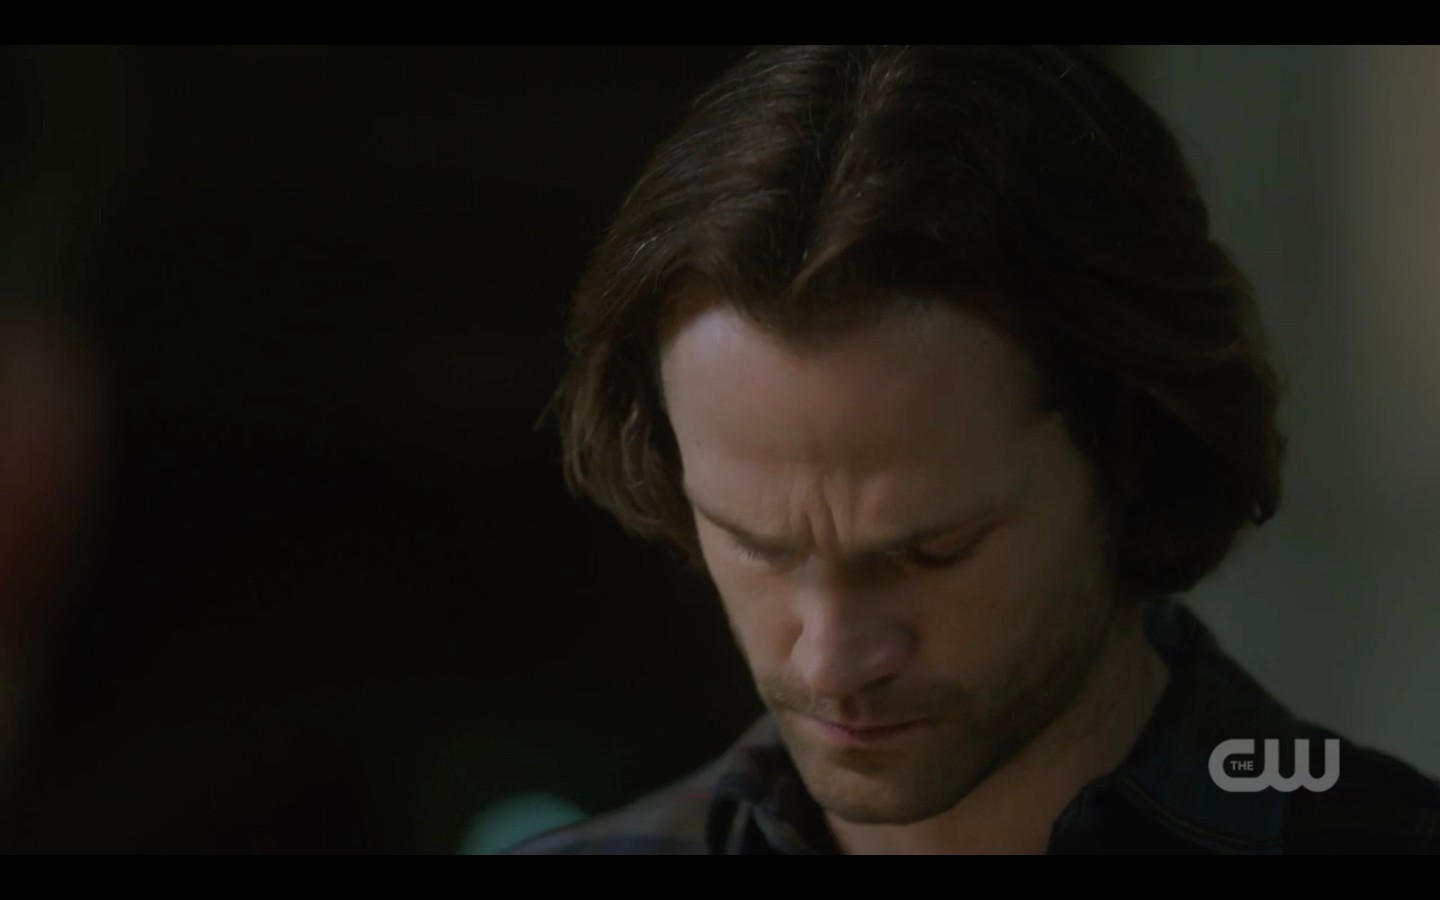 supernatural sam winchester sad looking down for brother dean unfinished business